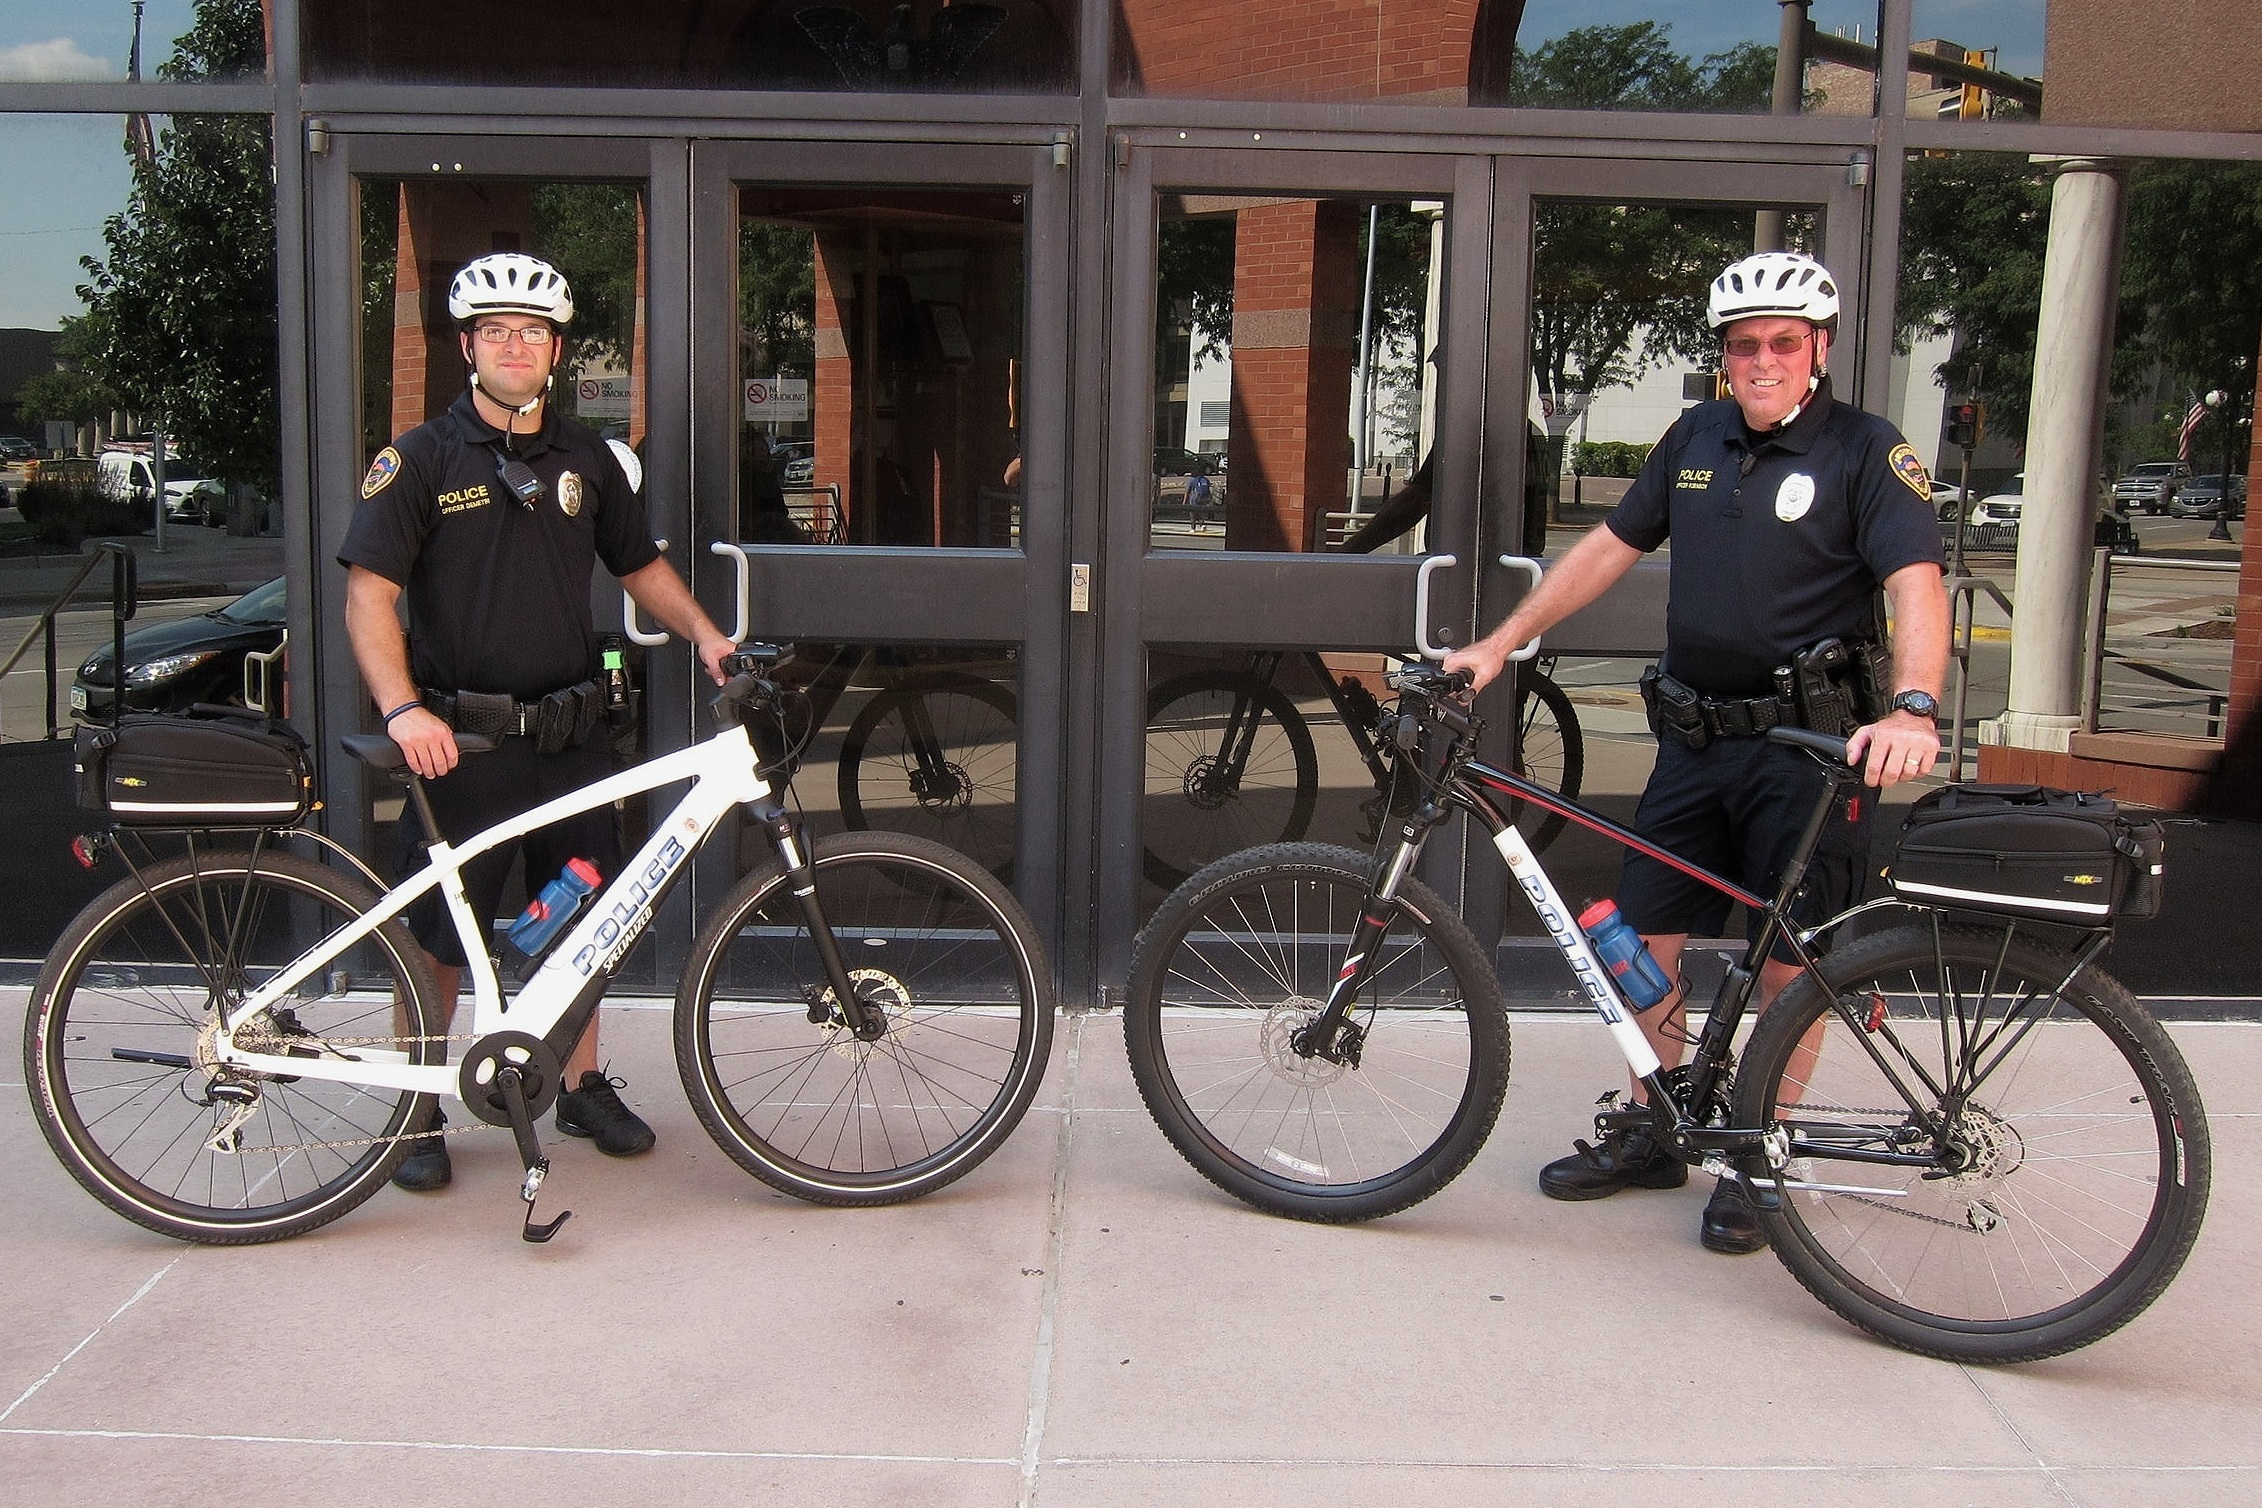 In August of 2019, the Sioux City Police Department started the bike patrols in an effort to get officers out of cars and closer to the community. Officers Jeff Demetri and Shawn Robinson are two of the officers trained for bike patrol.